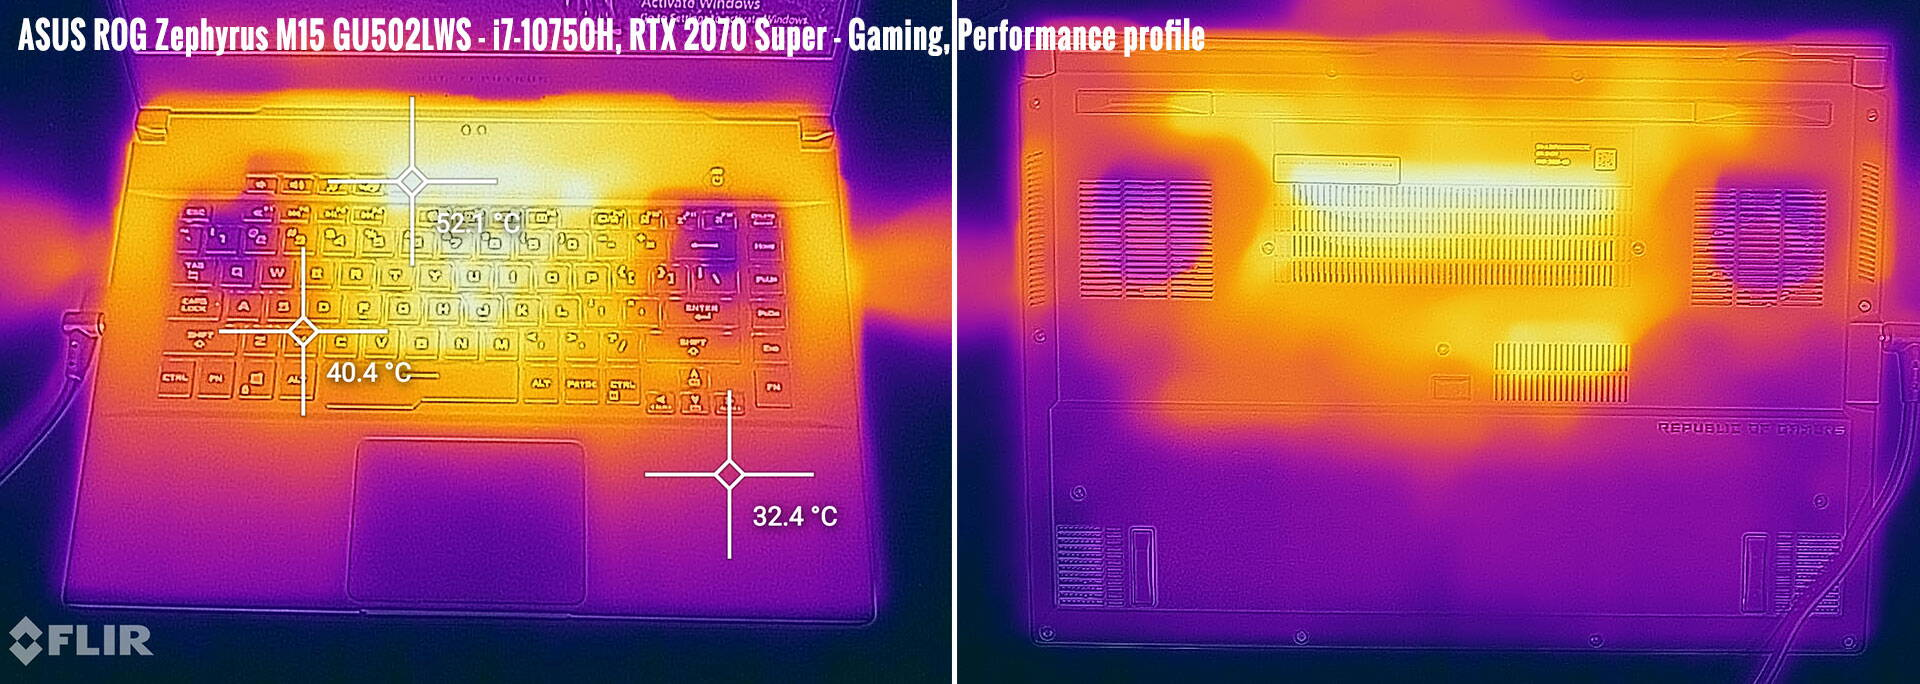 temperatures-zephyrus-m15-gaming-performance